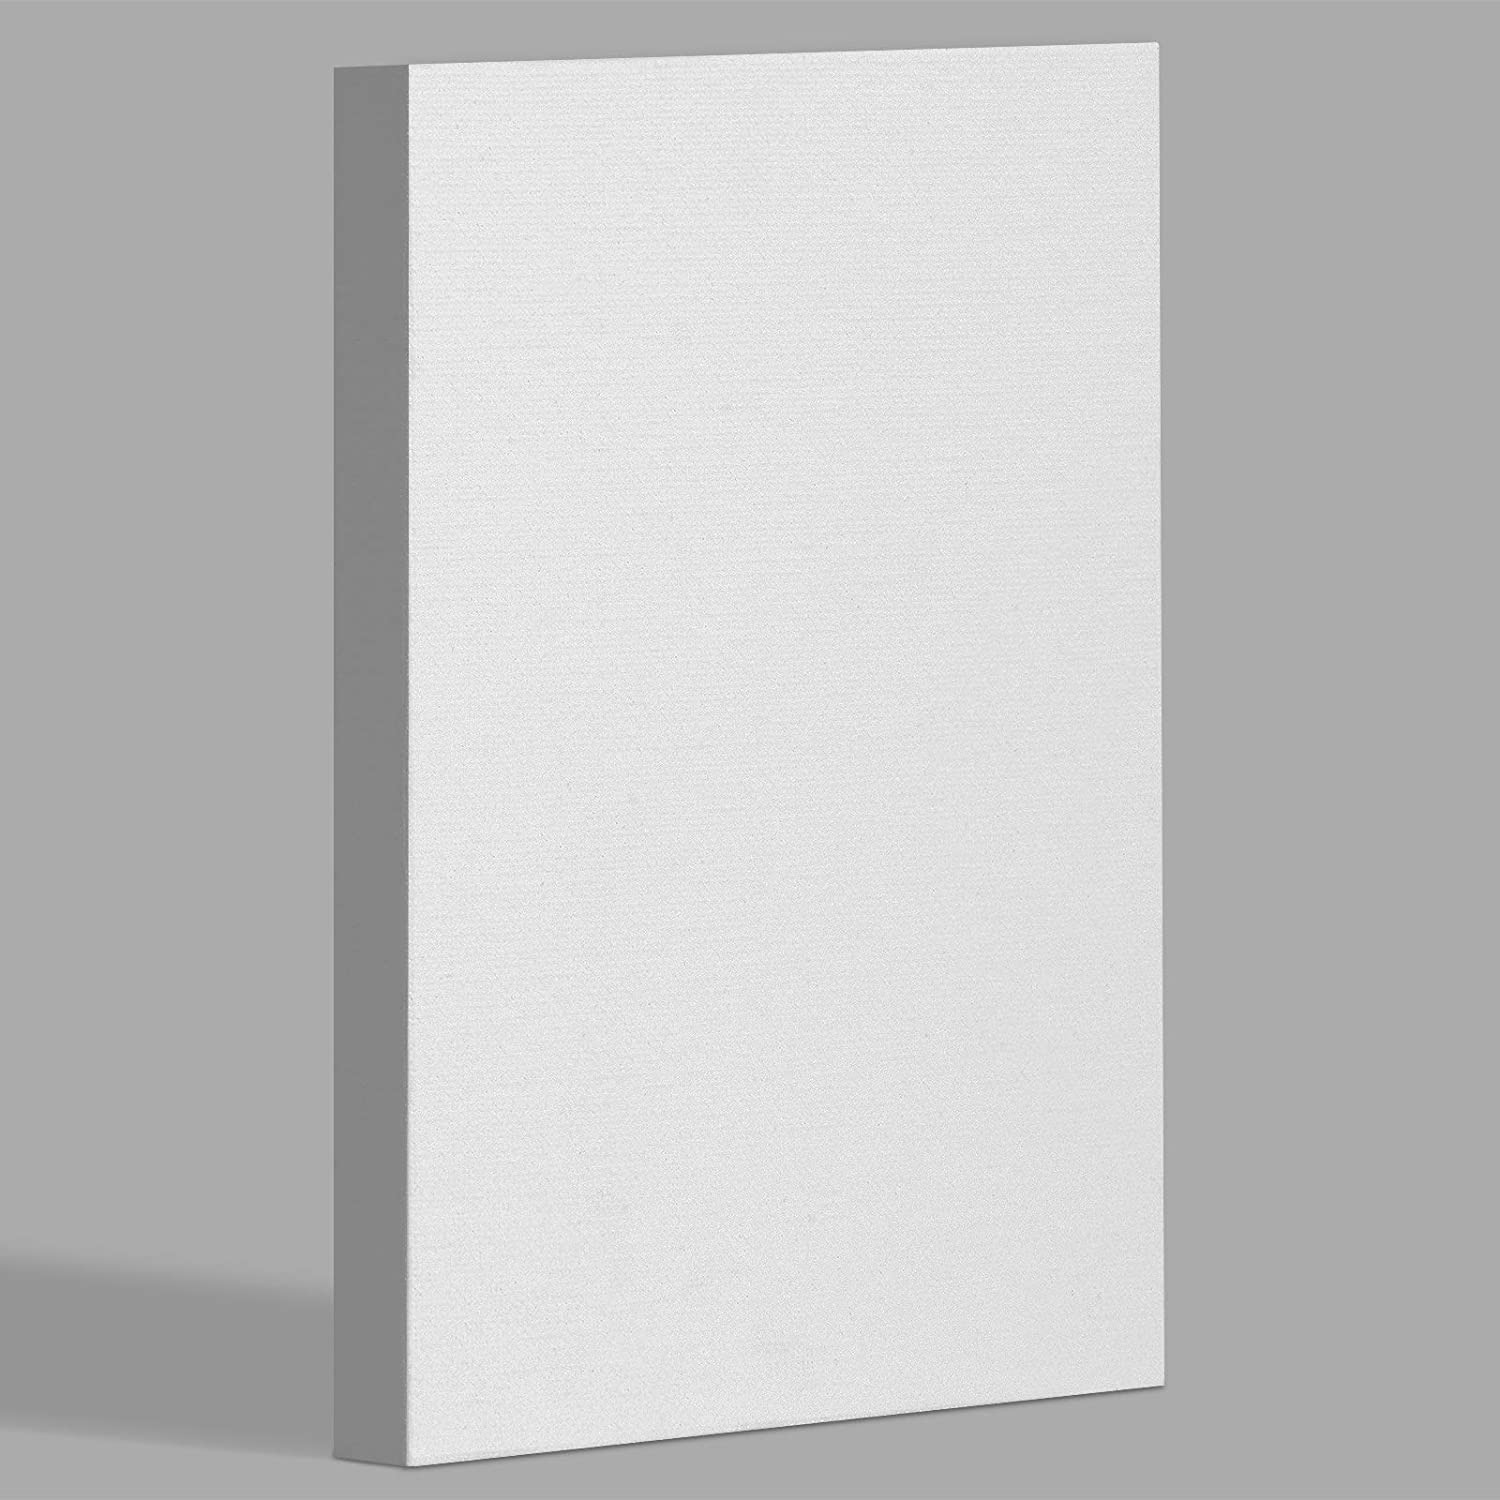 miniature 2 - Americanflat Stretched Canvas in White 100% Cotton Wooden Frames & Acid Free